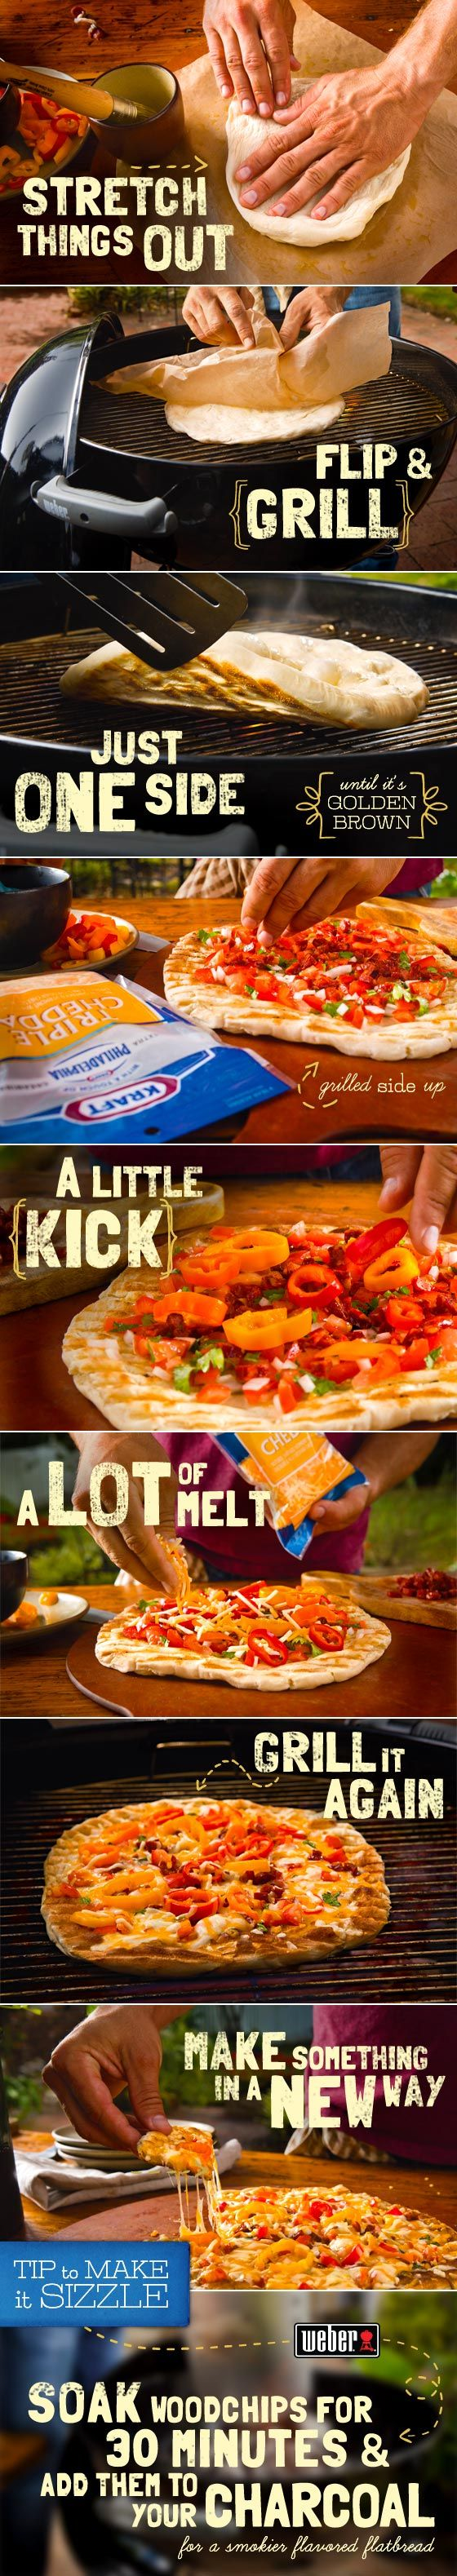 Yum summer grilling inspiration!